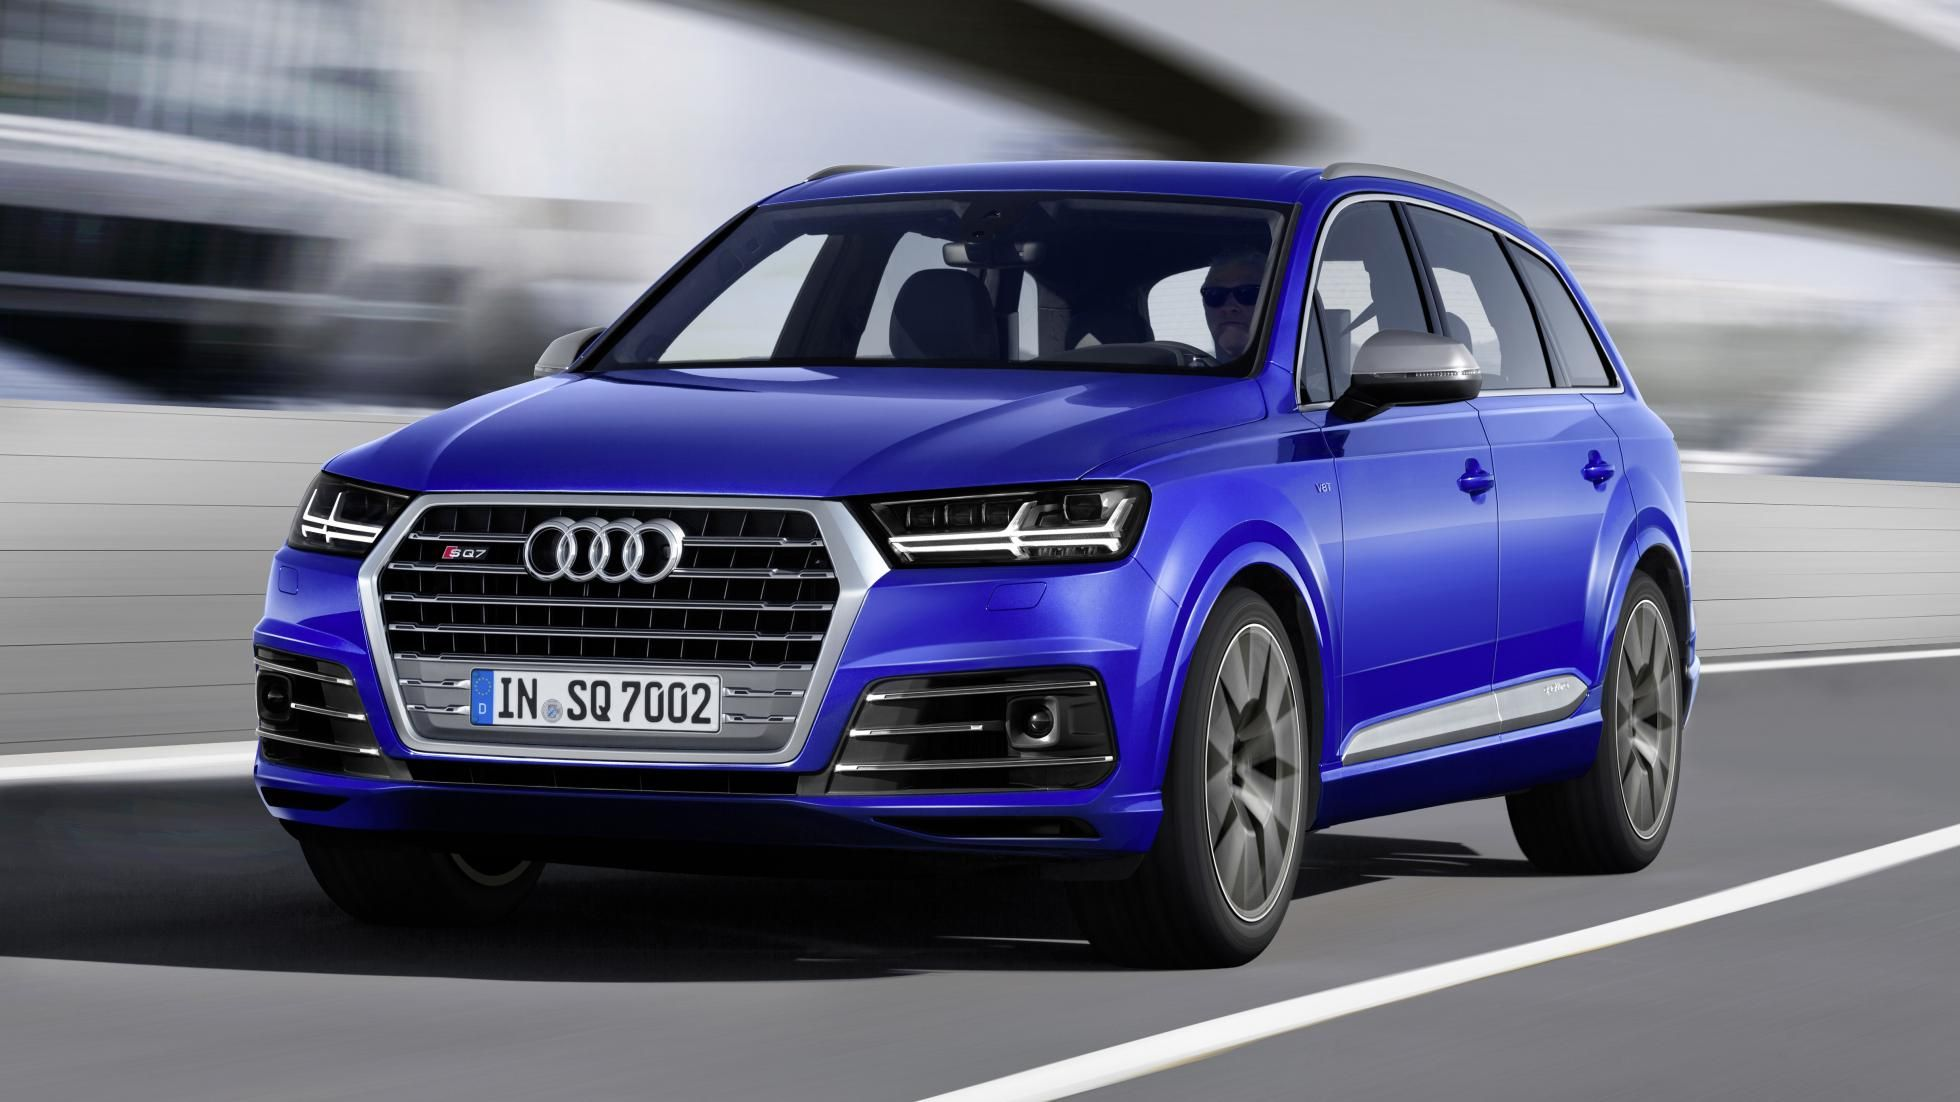 Upcoming Audi Cars Luxury Cars In India Audi The German Carmaker Interested In Offering The New Luxury Cars In The Indian Market To Crea With Images Audi Audi Cars Suv